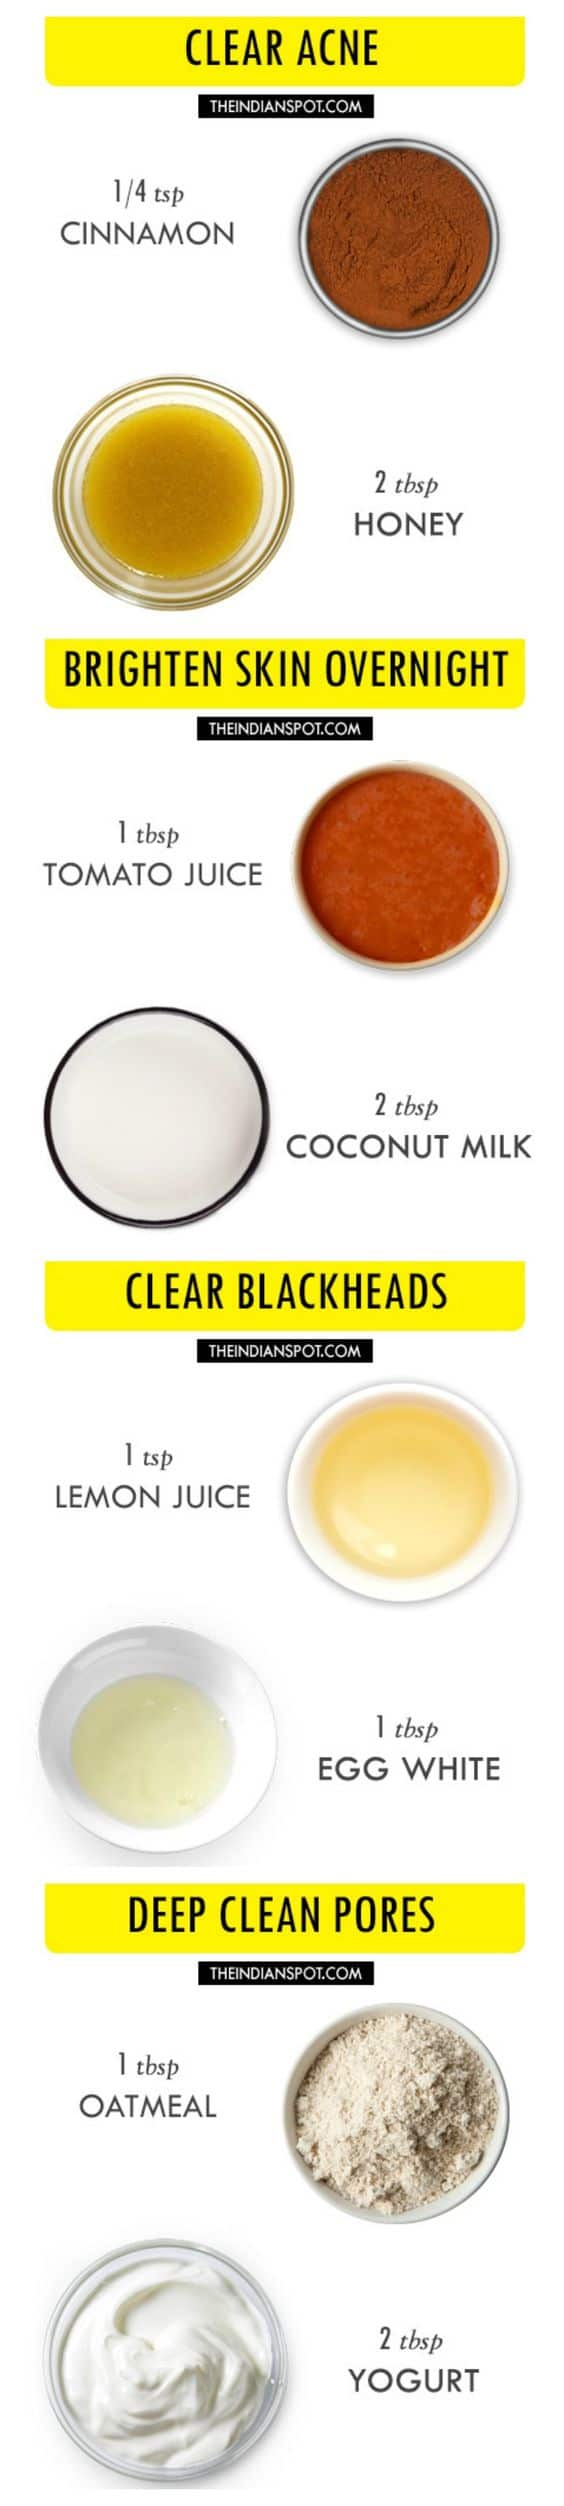 21 diy pore-shrinking face masks you need in your beauty regimen